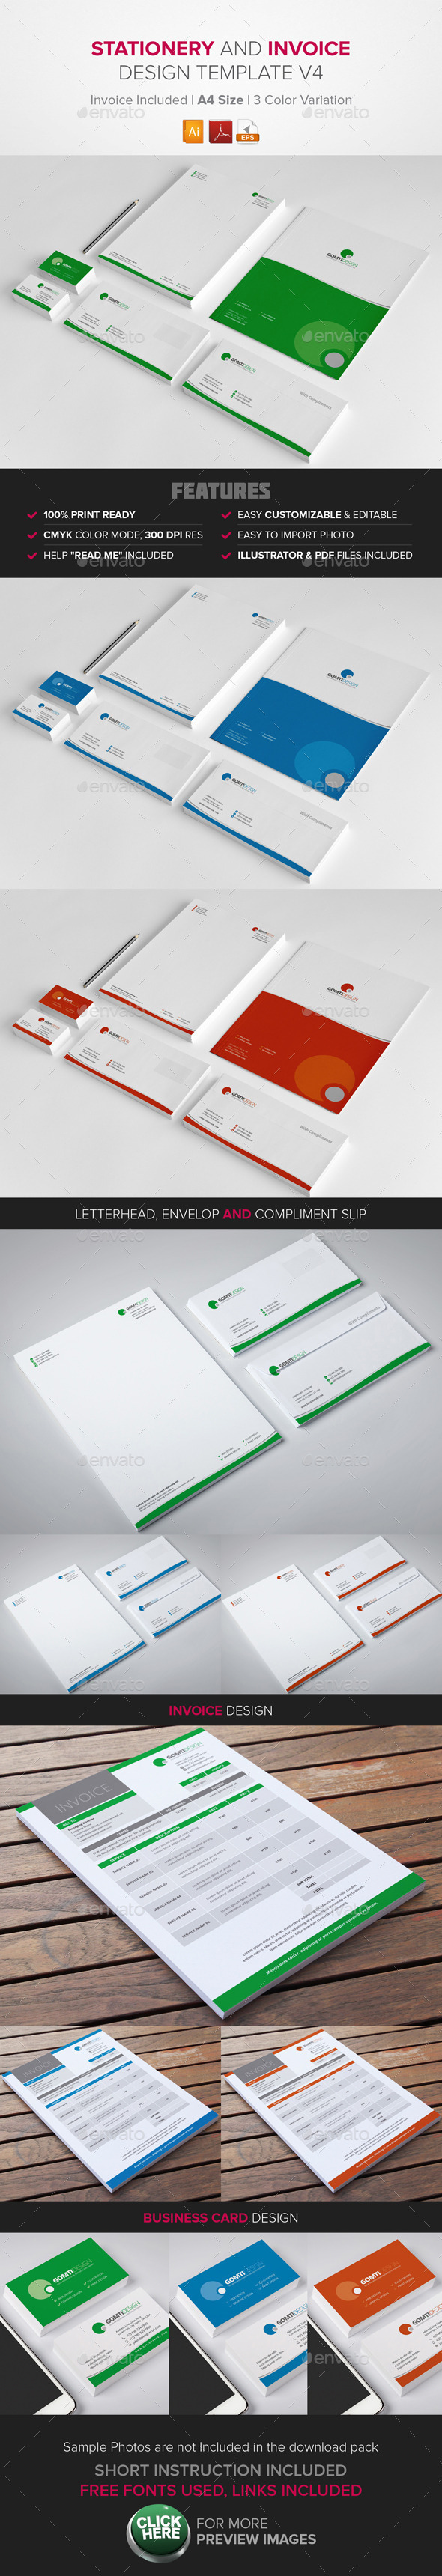 Stationary & Invoice Design Template v4 - Stationery Print Templates